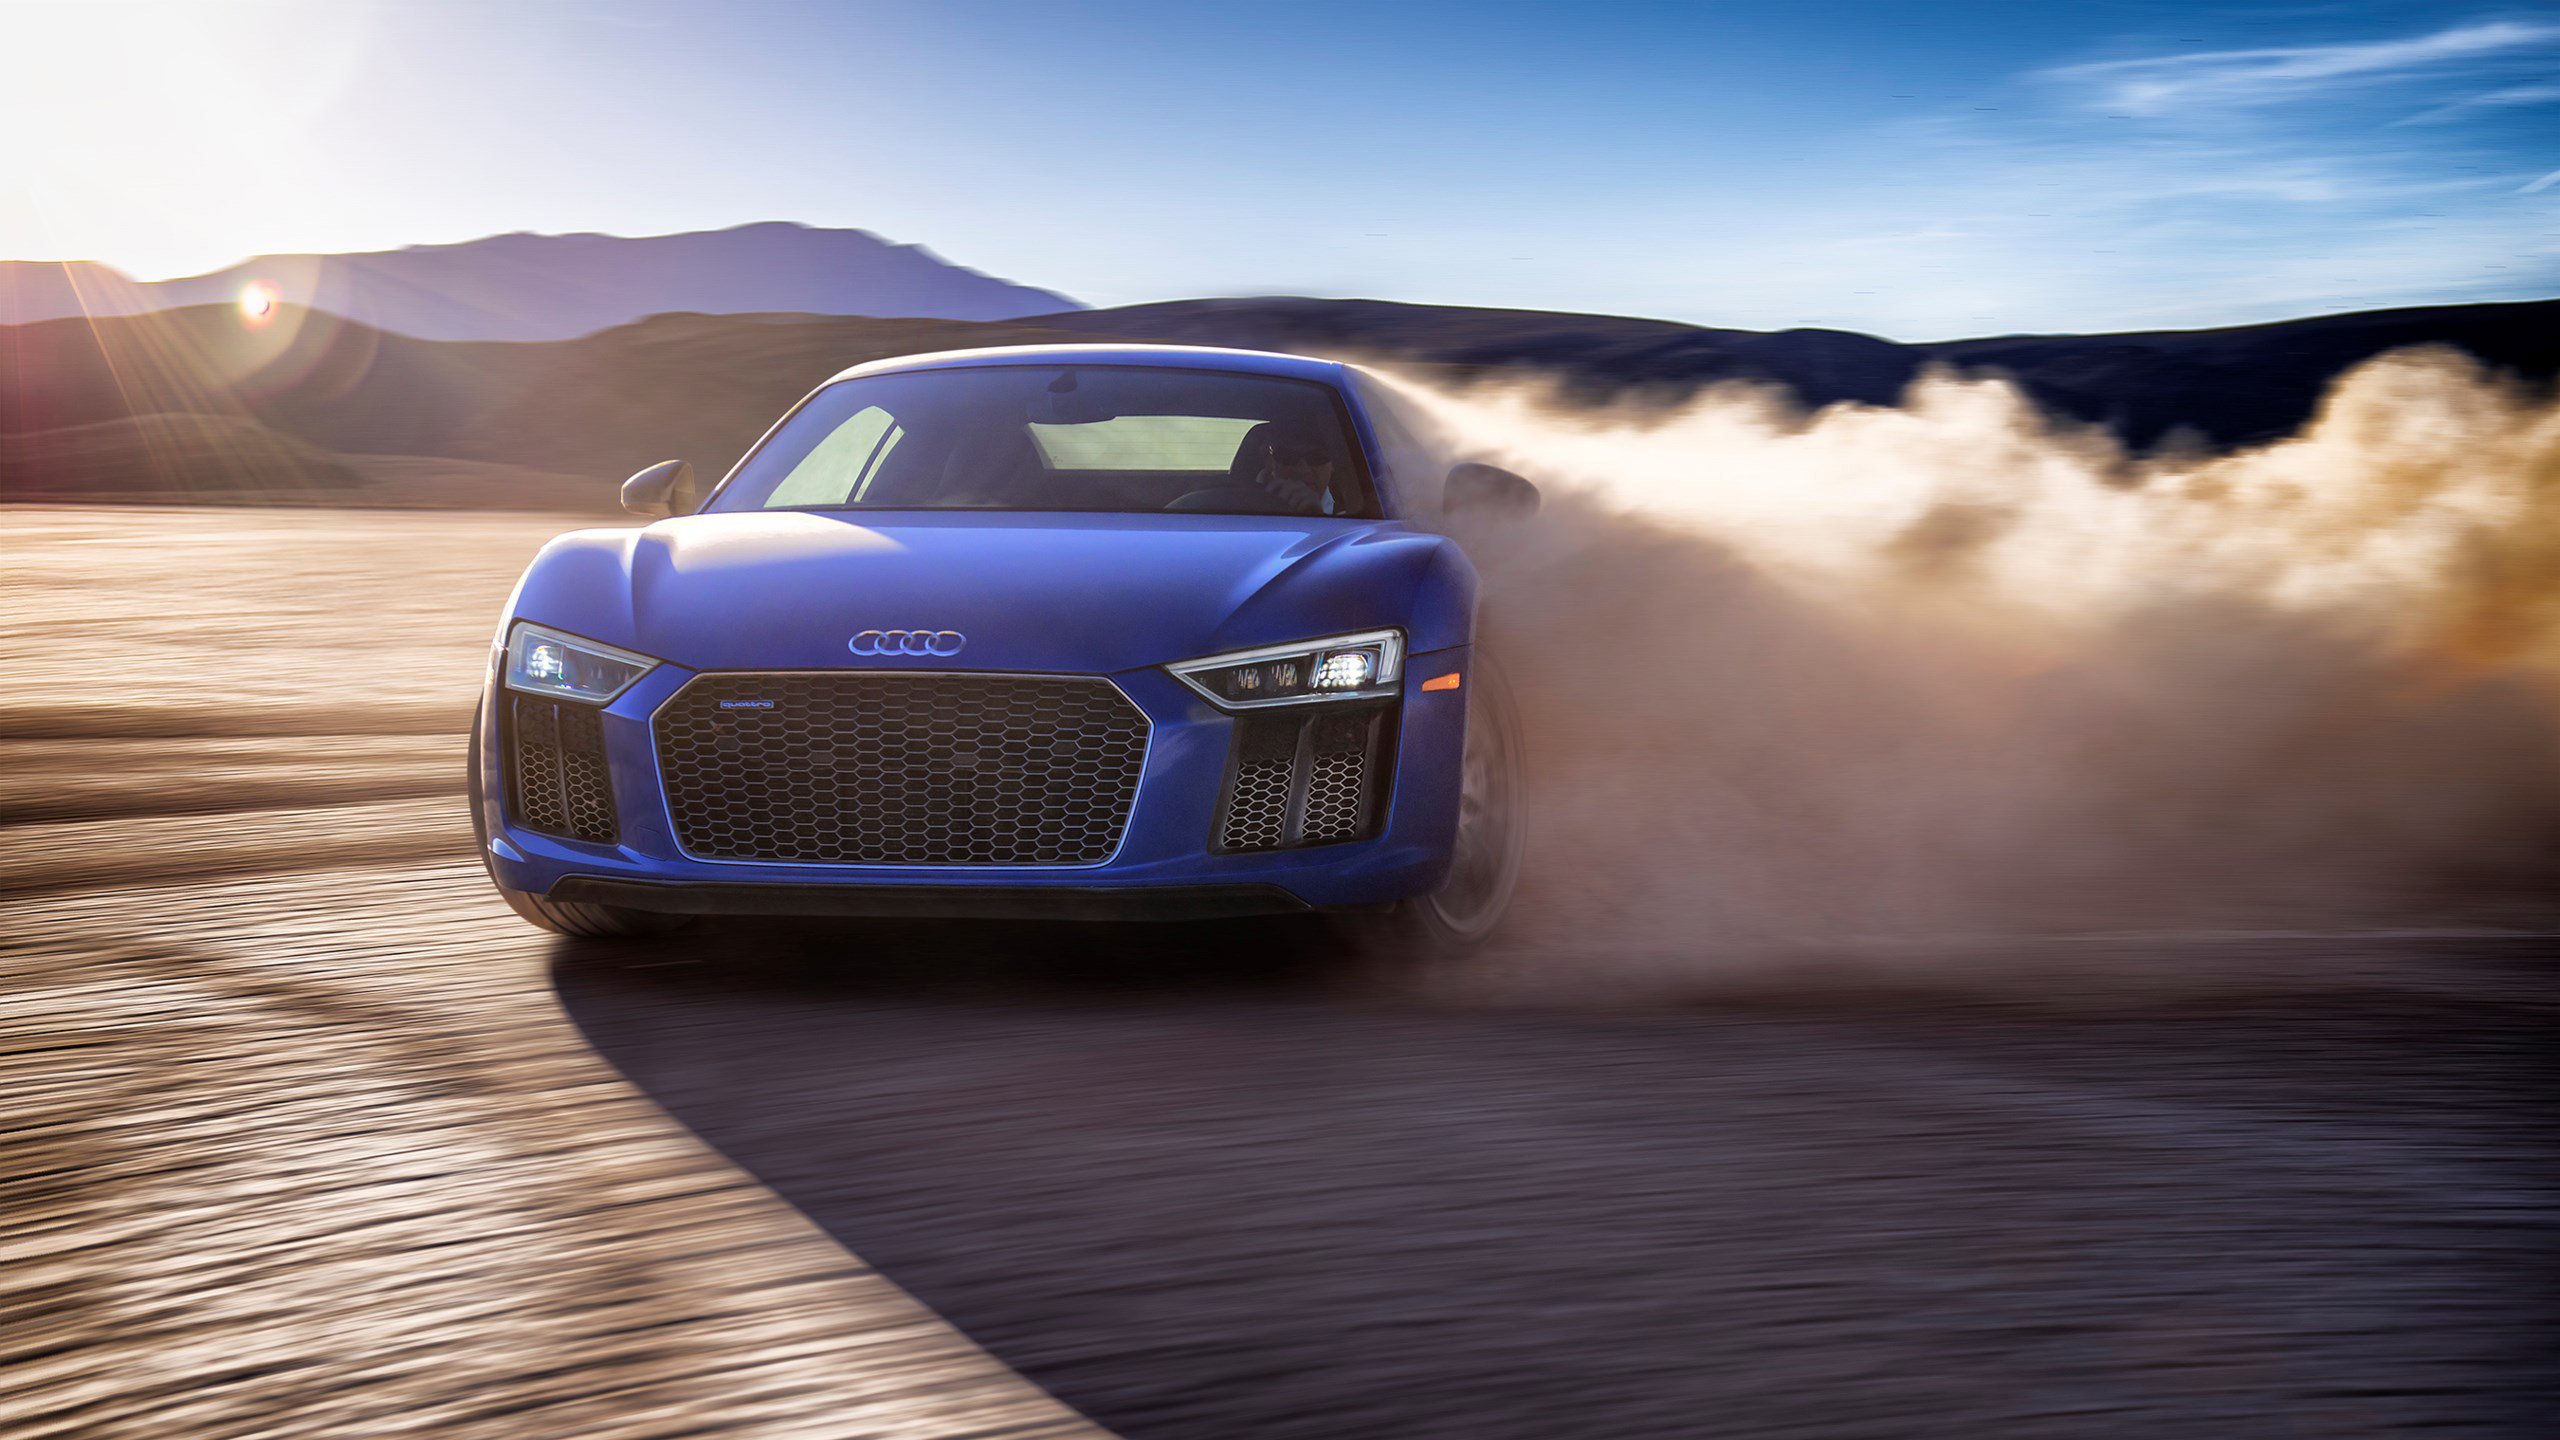 Audi R8 V10 Plus 2019 Wallpaper Hd Car Wallpapers Id 11688